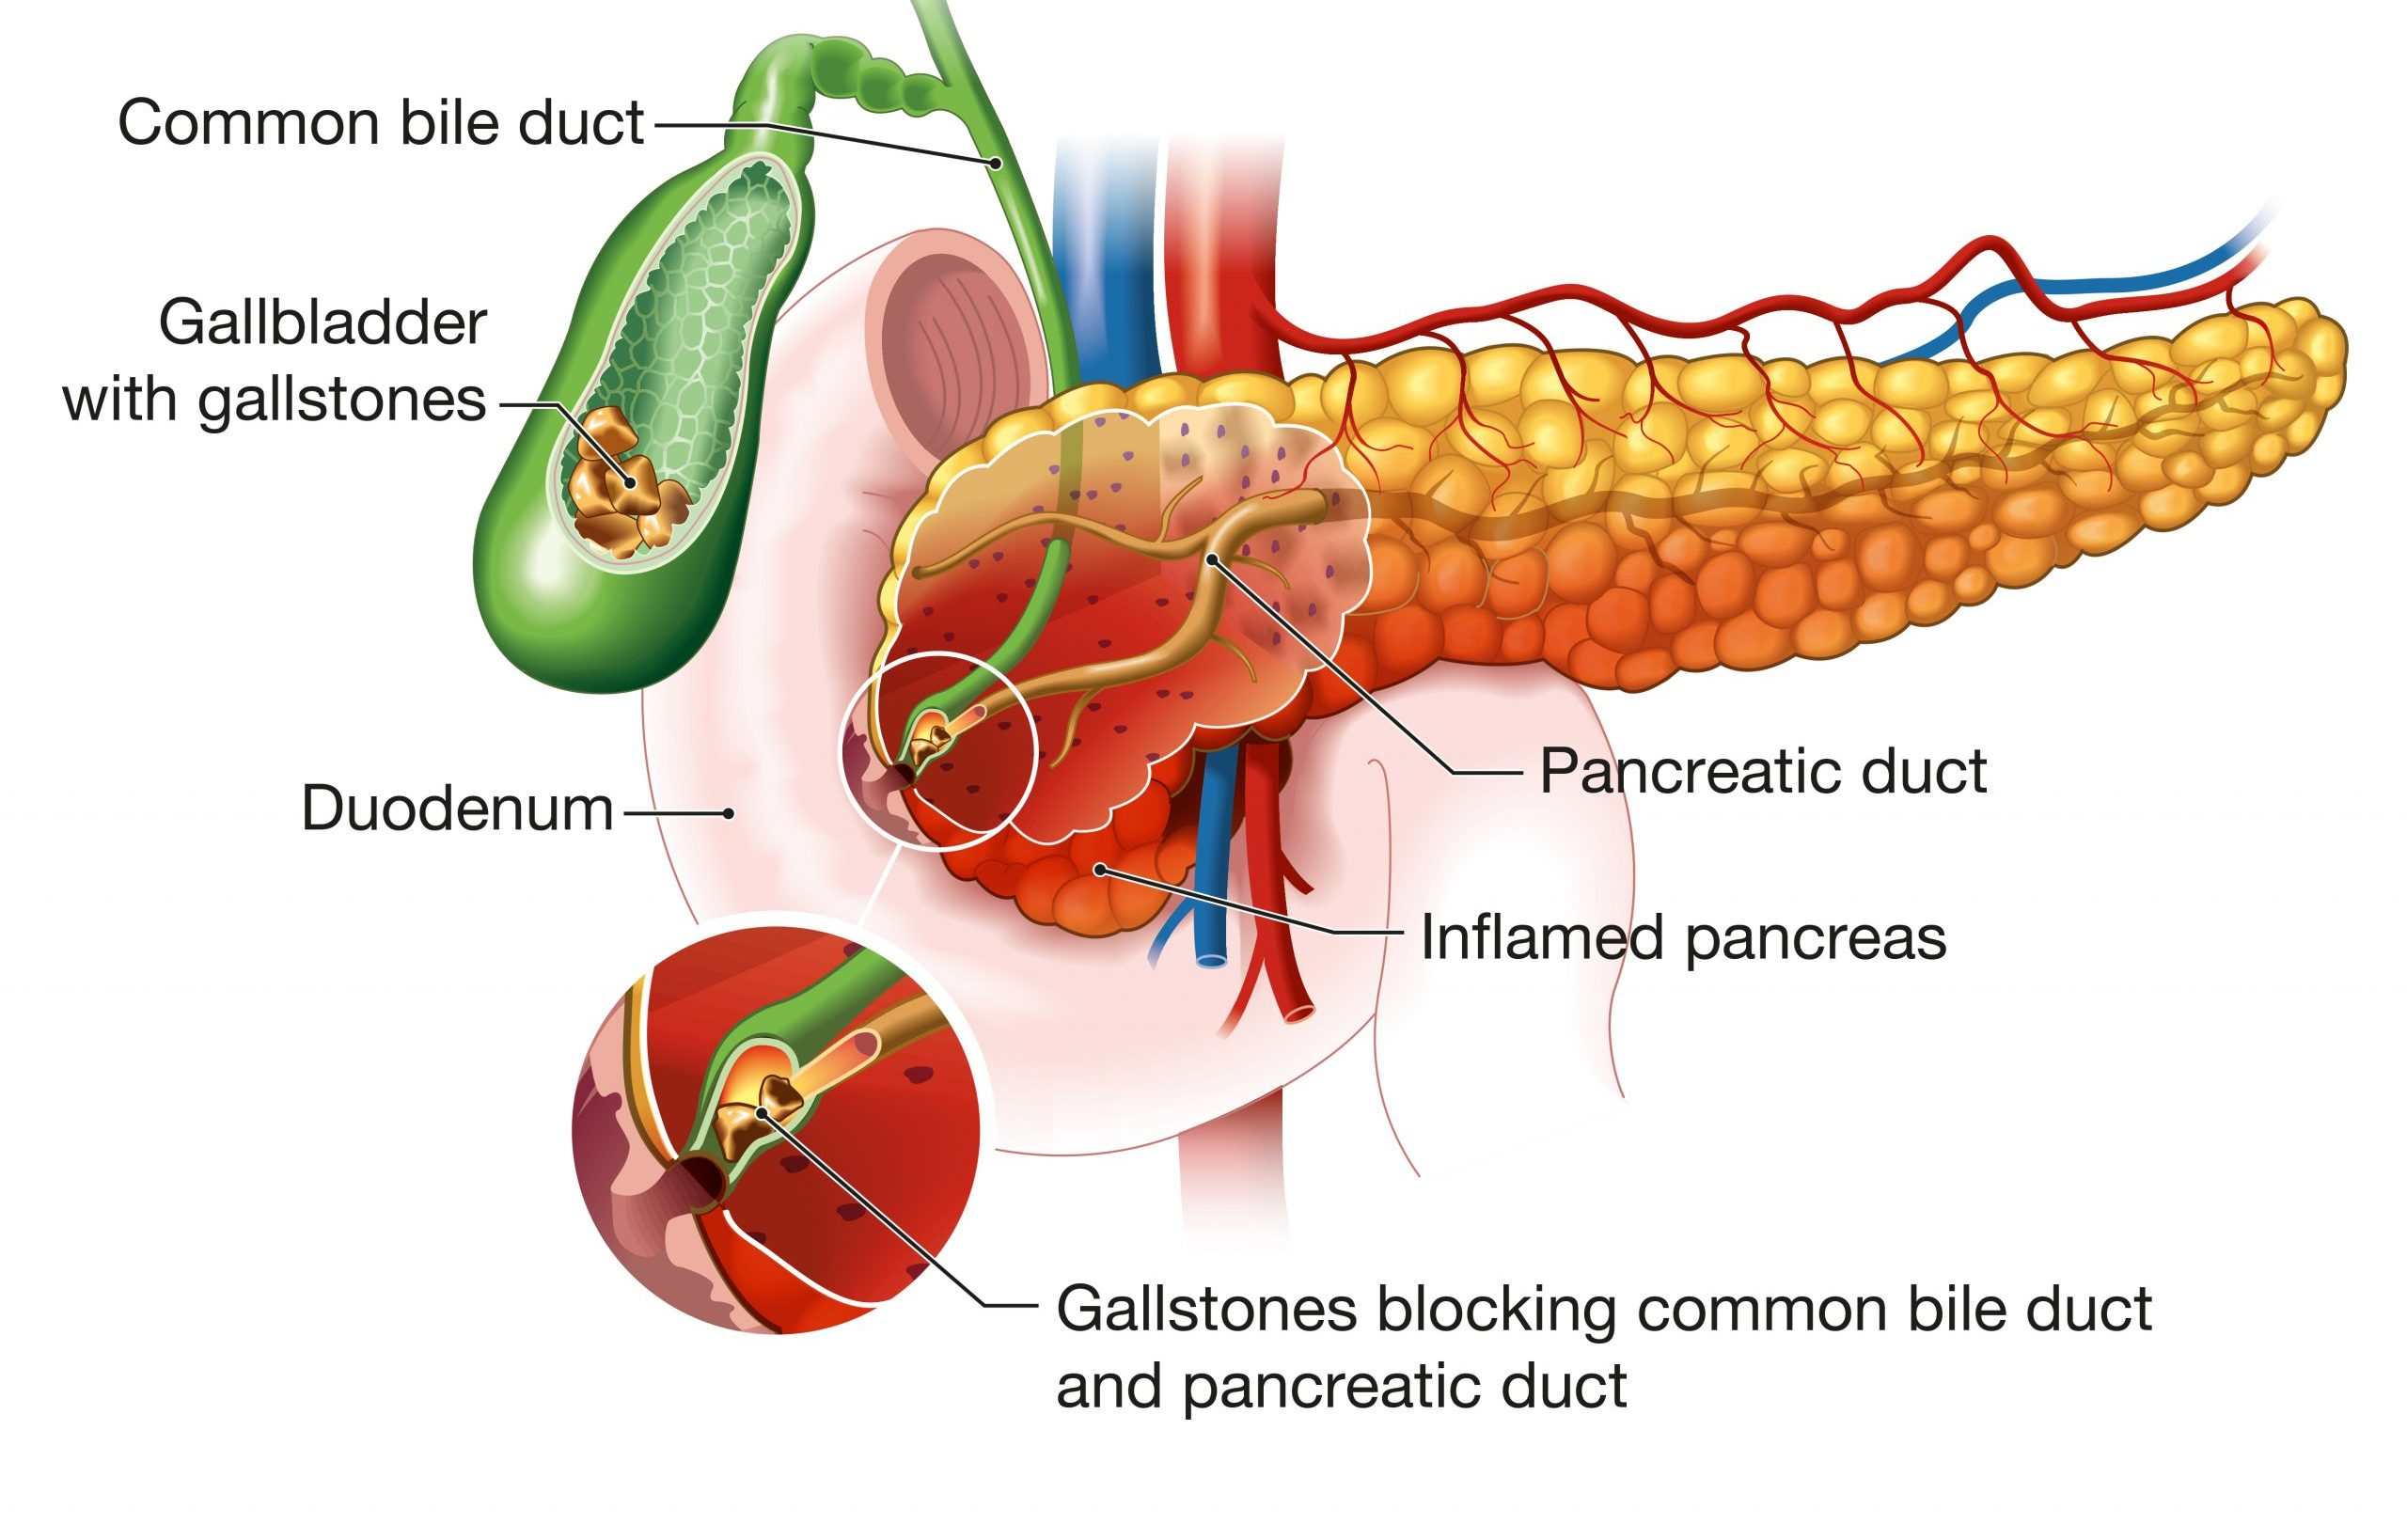 Obstruction of the pancreatic duct by a gallstone resulting in pancreatitis